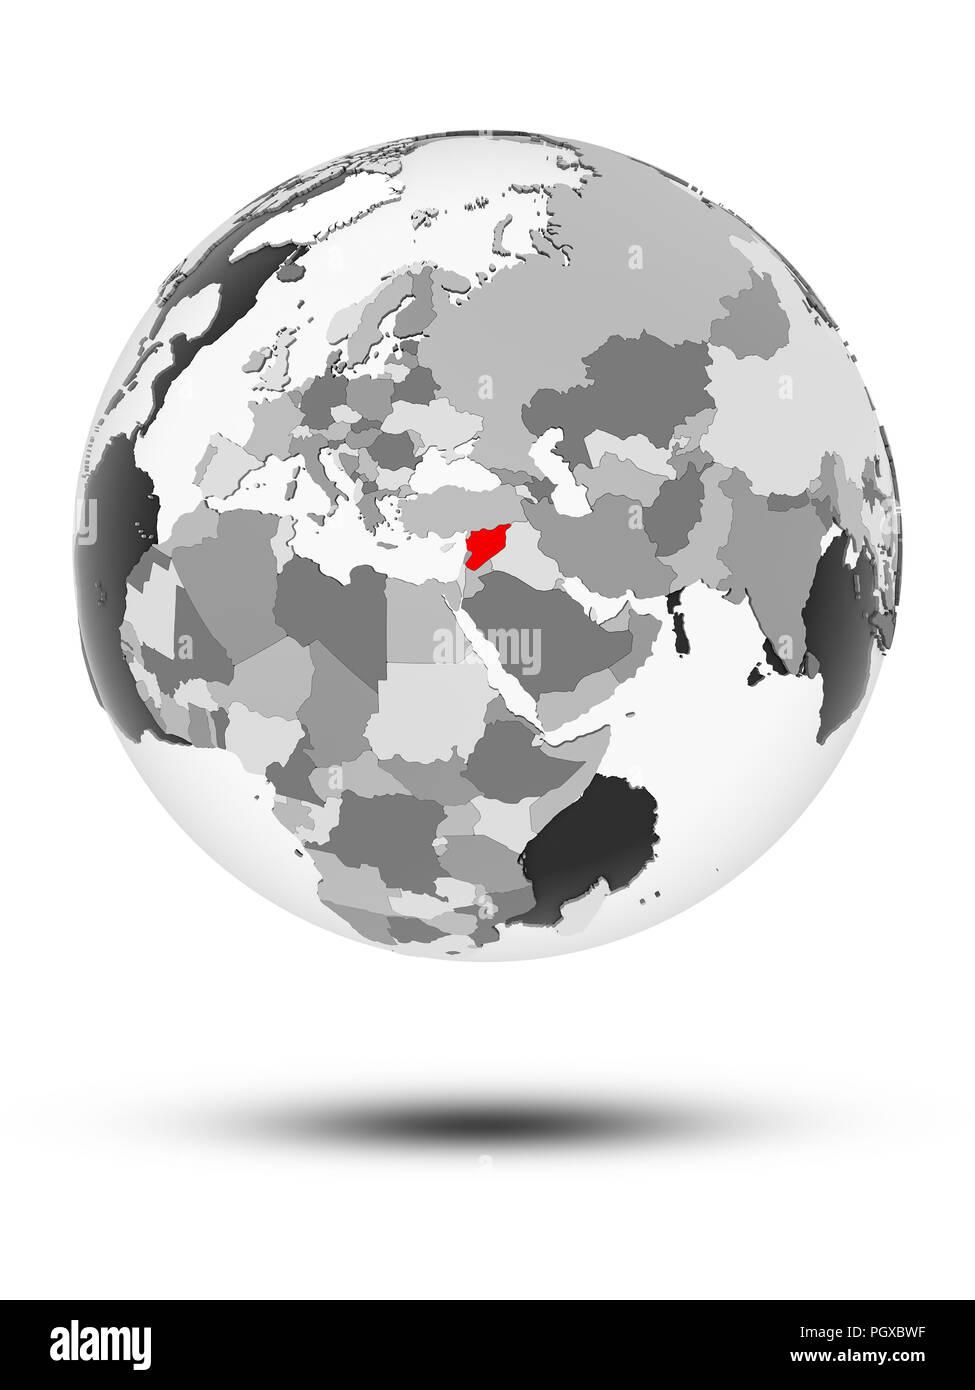 Syria on globe with translucent oceans isolated on white background. 3D illustration. - Stock Image